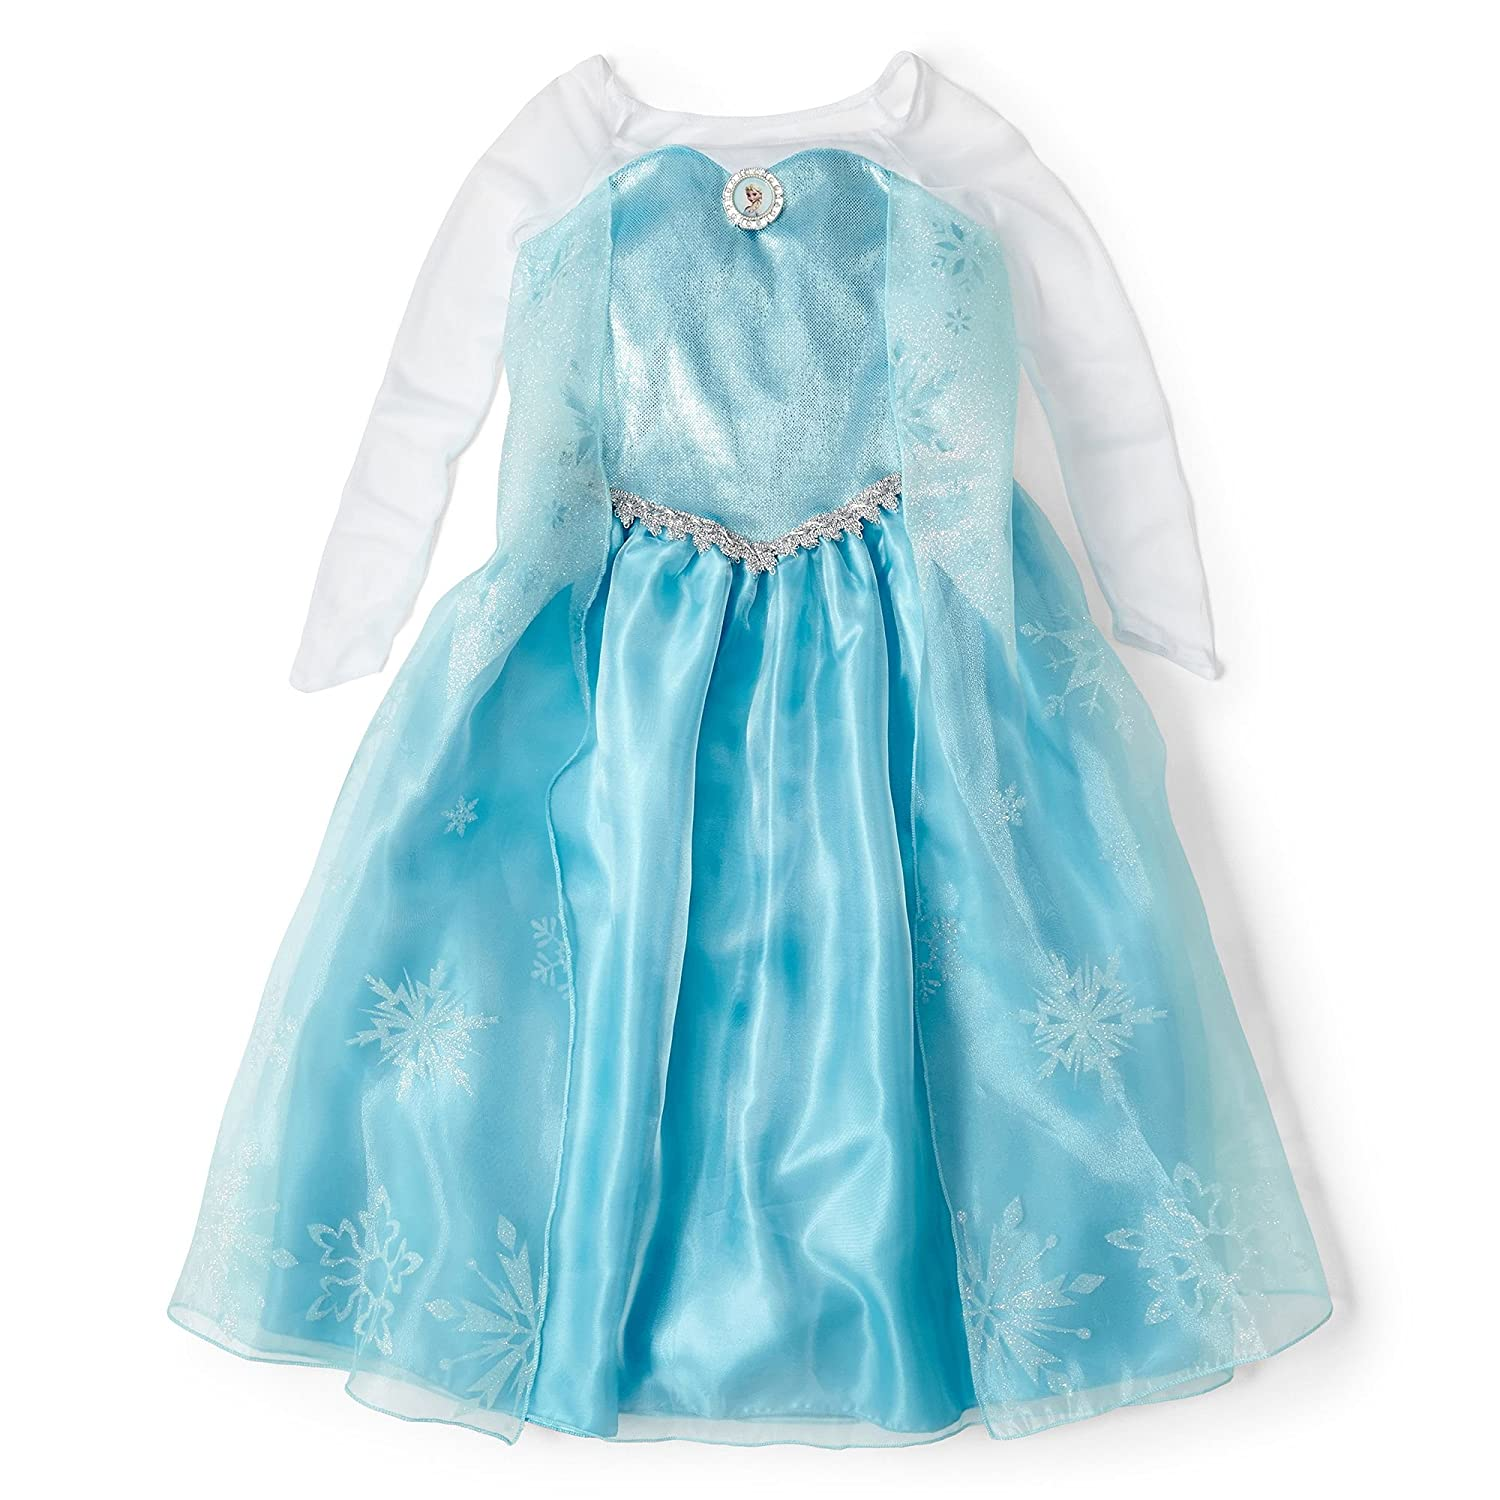 sc 1 st  Amazon.com & Amazon.com: Disney Elsa Frozen Costume: Toys u0026 Games